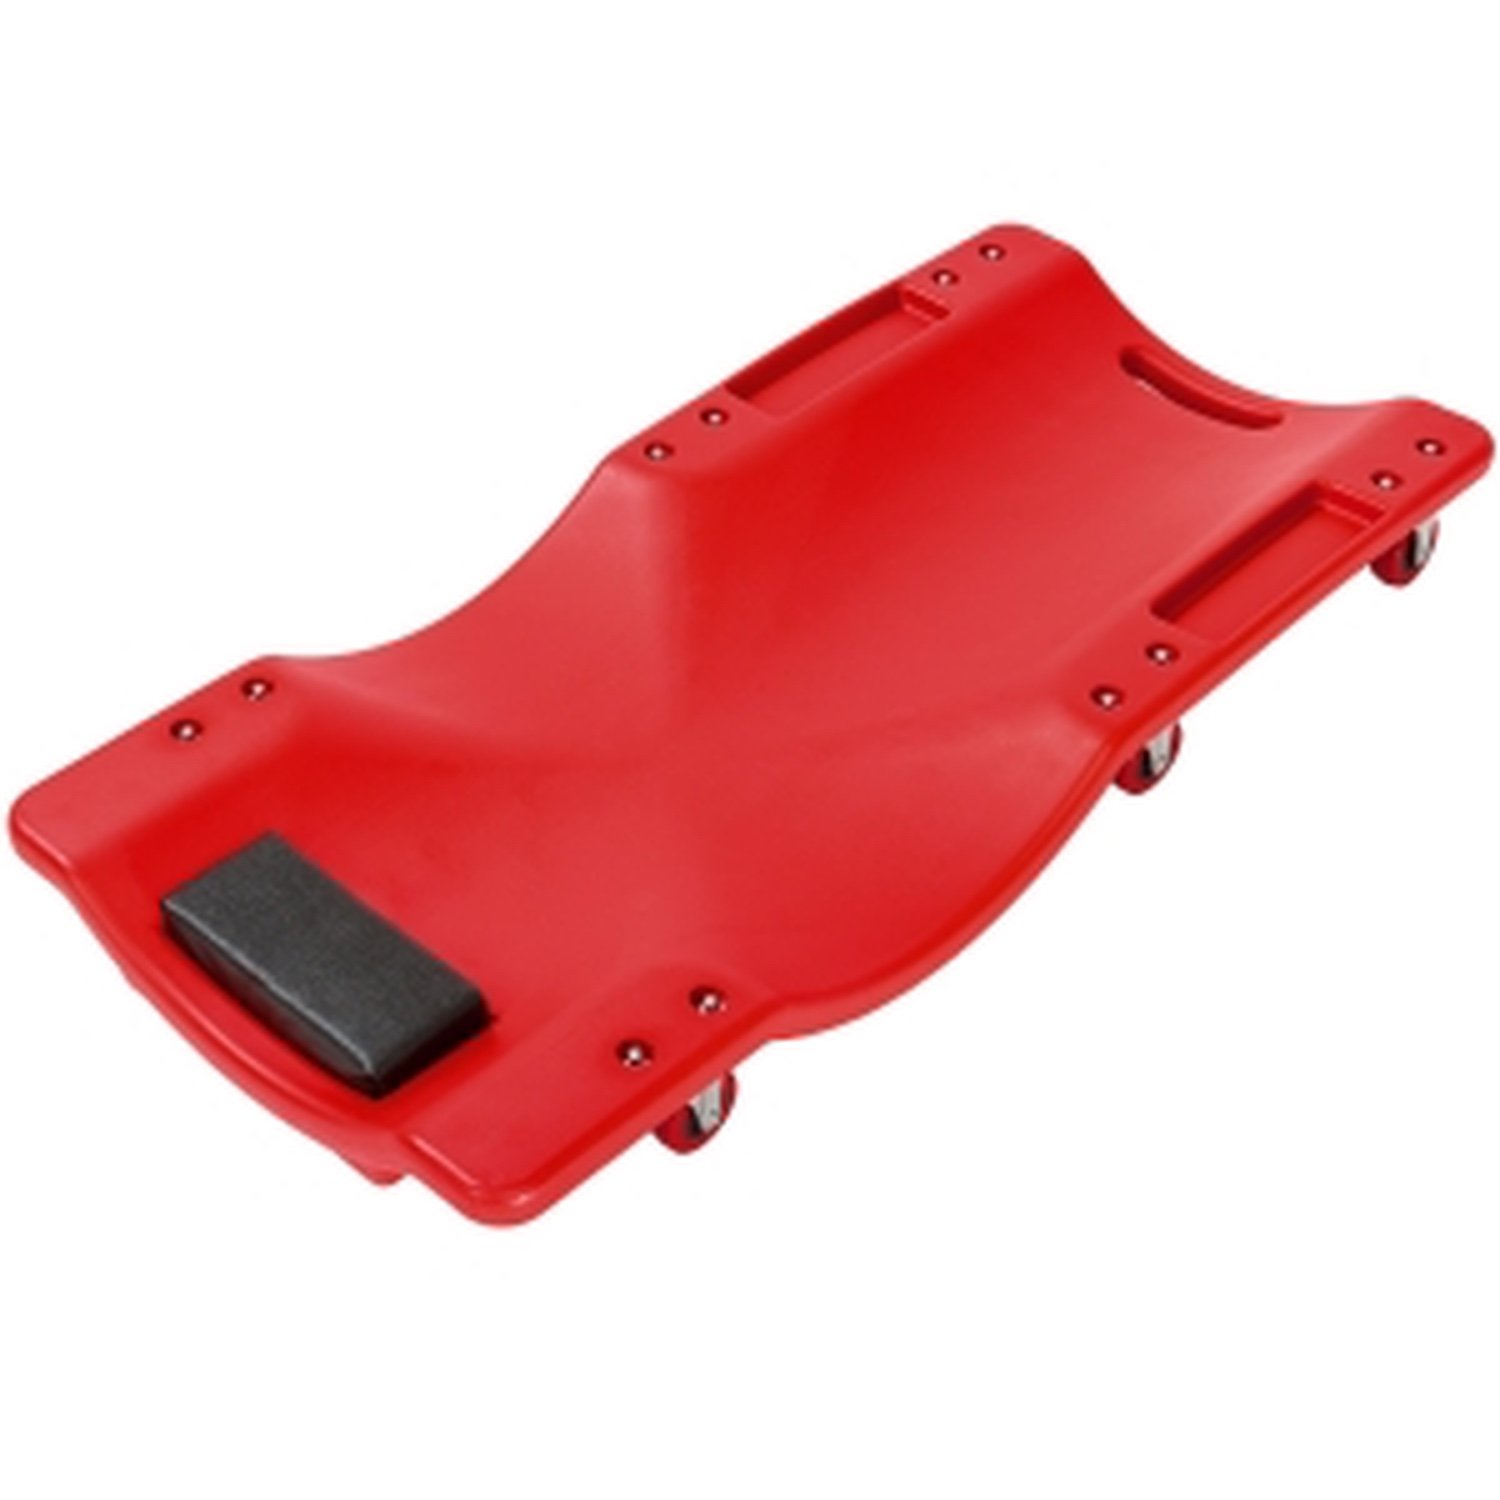 Stretcher/bed For Mechanical Workshop Resistant Plastic With Wheels Repair Car